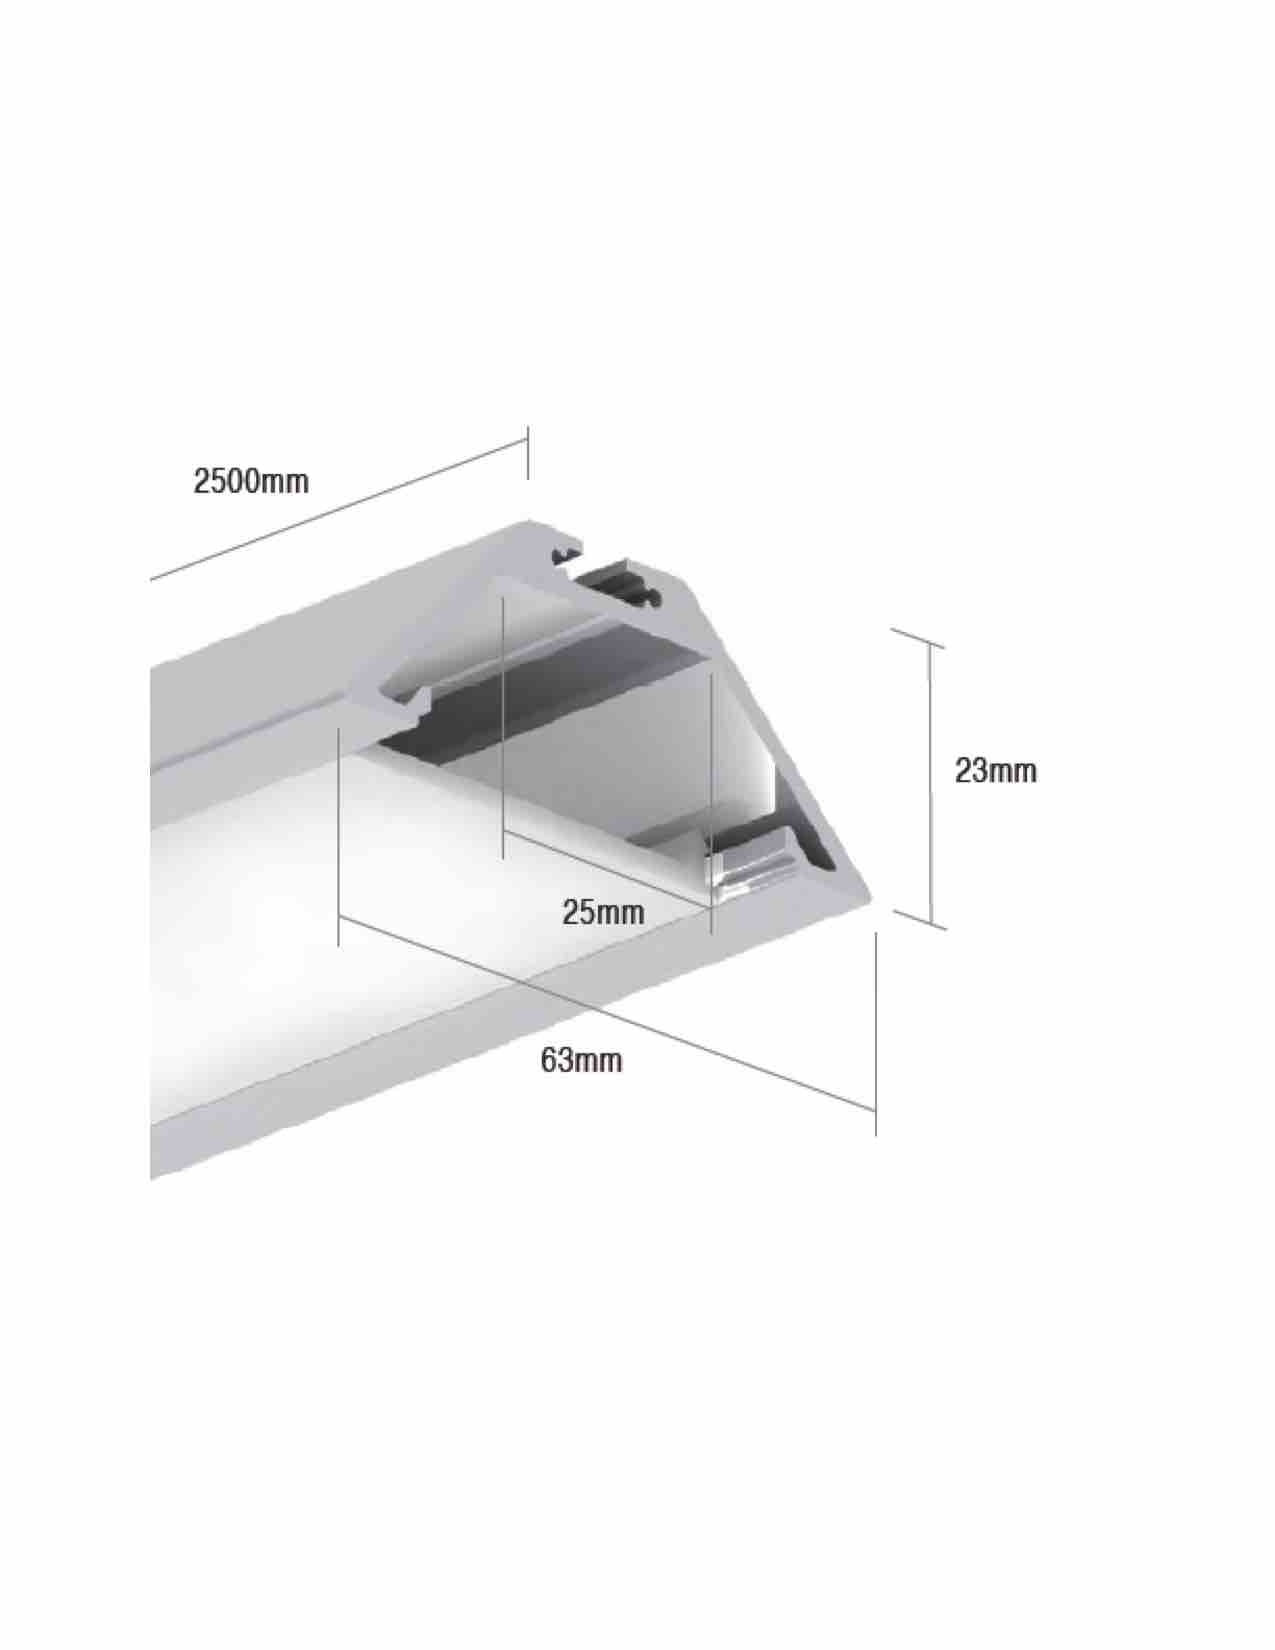 Custom Built Linear Led Lights For Offices Residences Condos And Used To Create Color Changes Using 4 Bright S Mounted In Corners A Make Up Mirror Equipped With Two Types Of Leds Simulate Daylight Or Evening Light The Ability Adjust Mixture Variable Colour